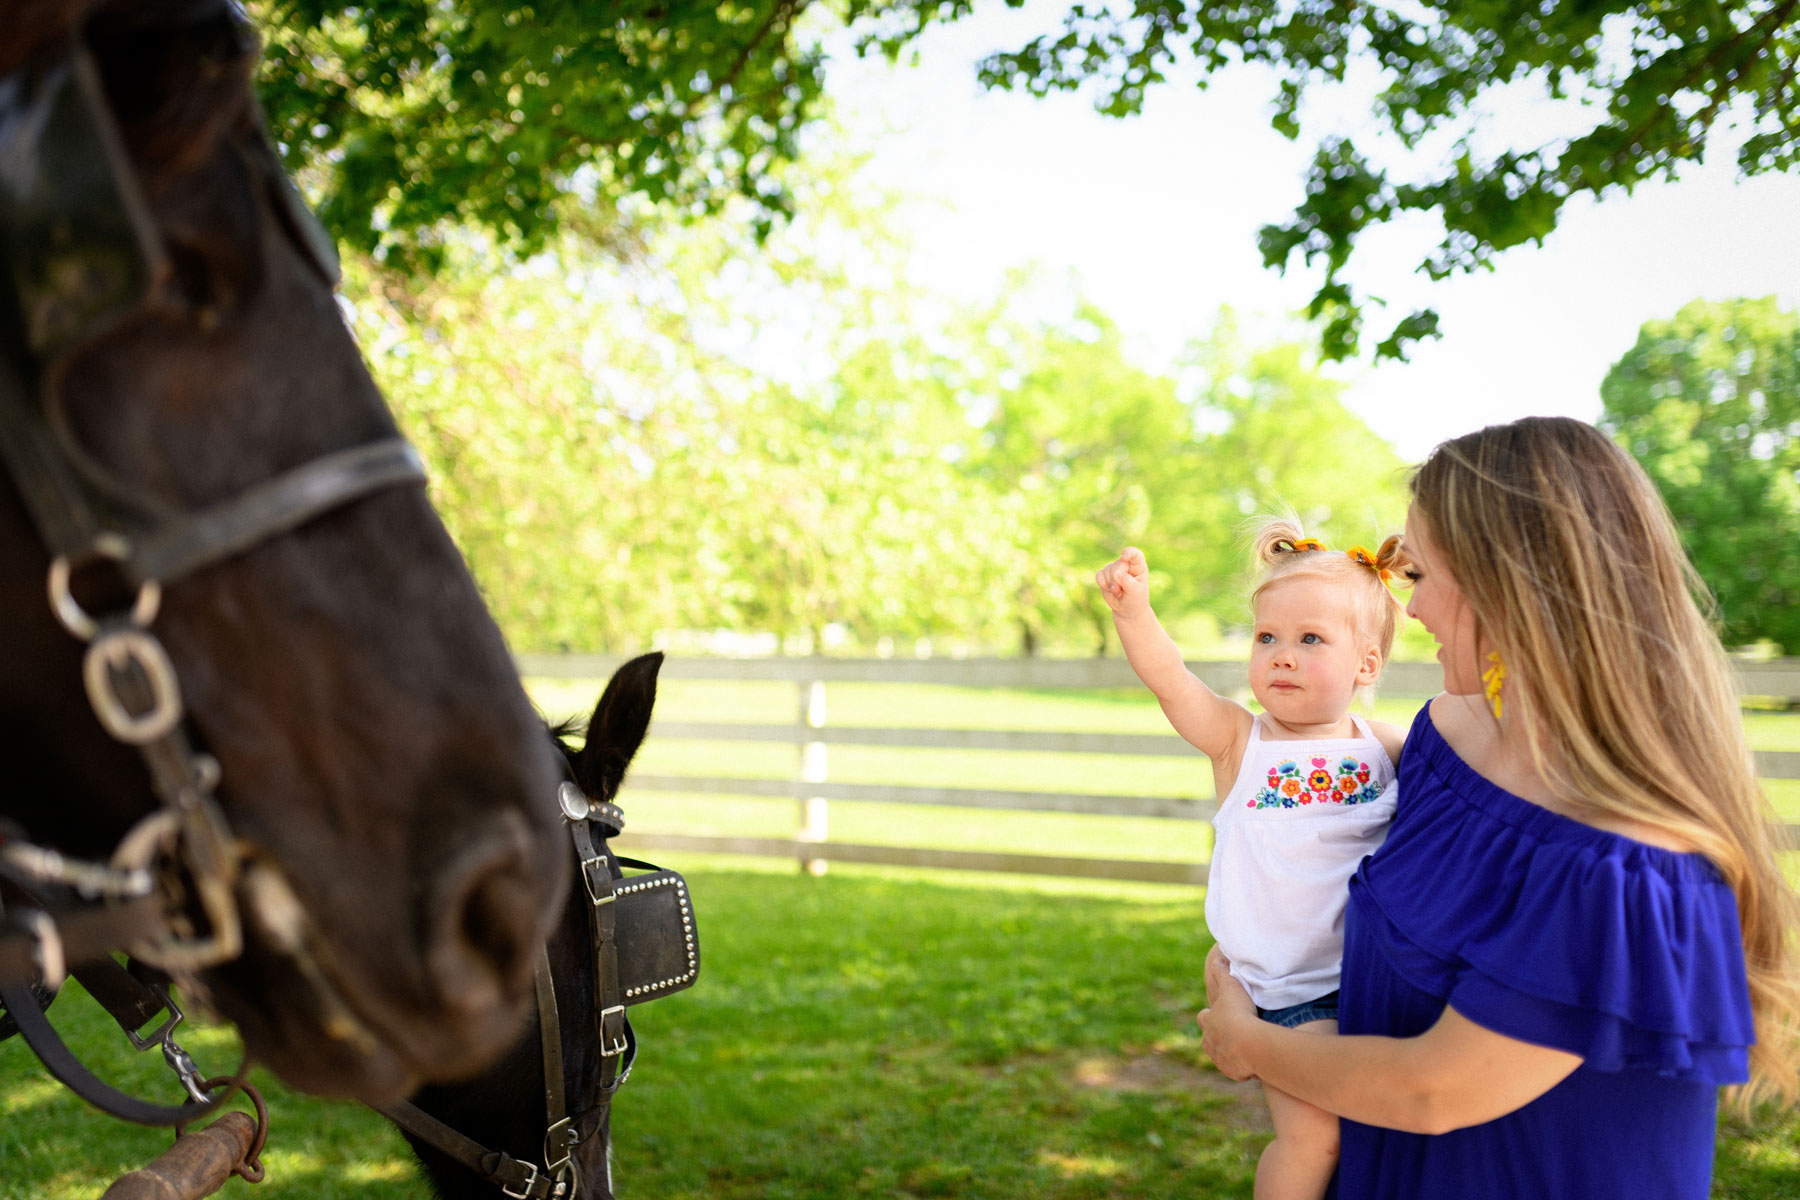 Courtney holds Jade as she points towards a horse.